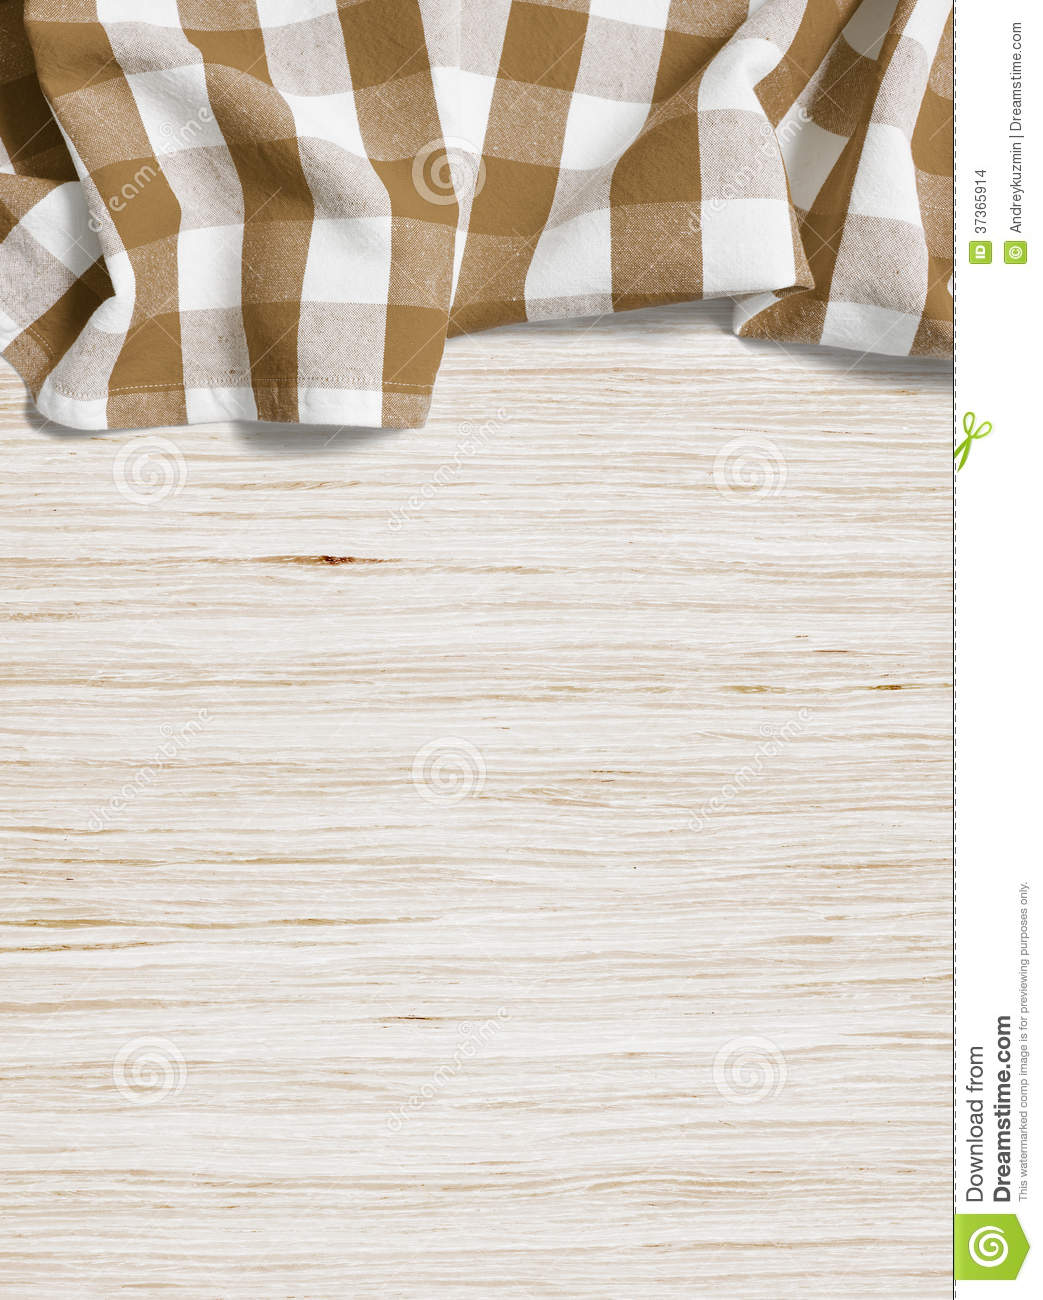 Nappe Table Bois : Brown a pli? la nappe au-dessus de la table en bois blanchie par